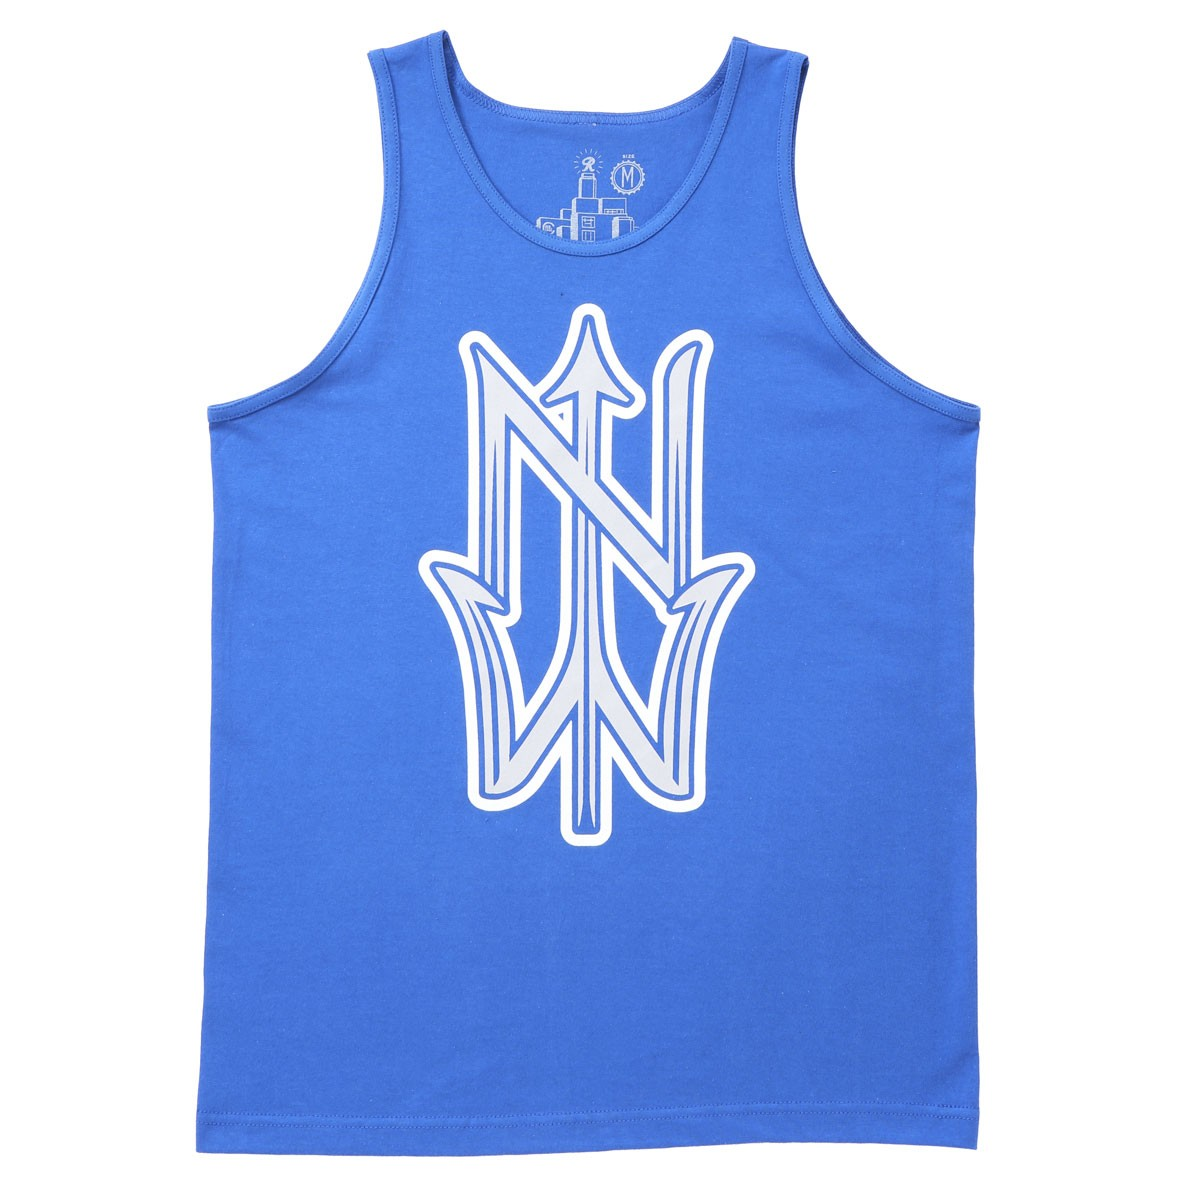 Casual Industrees NW Trident Tank Top - Royal Blue